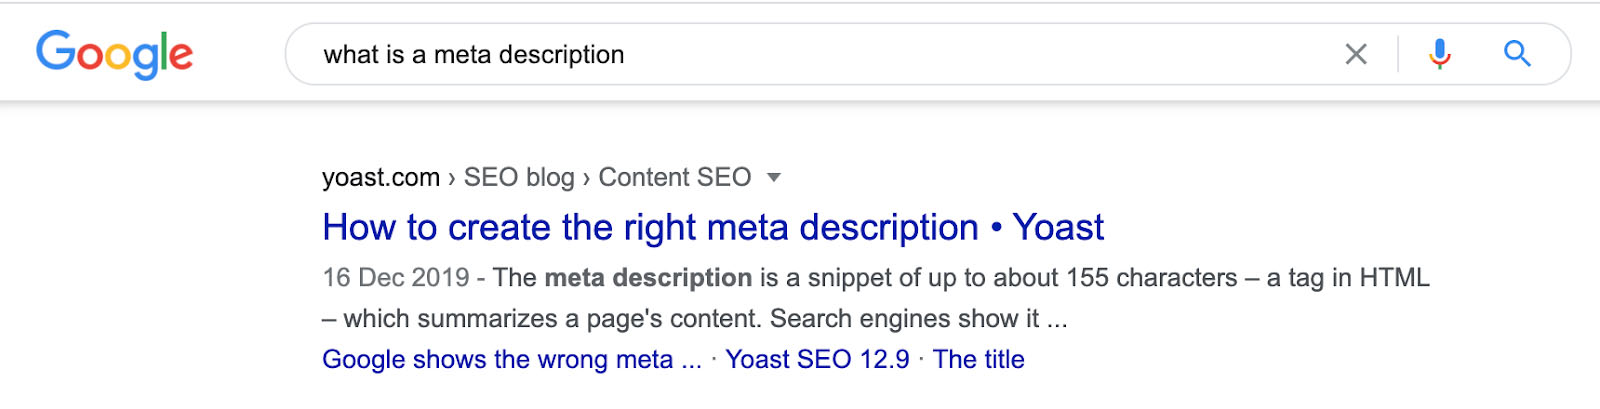 Example of a meta description.